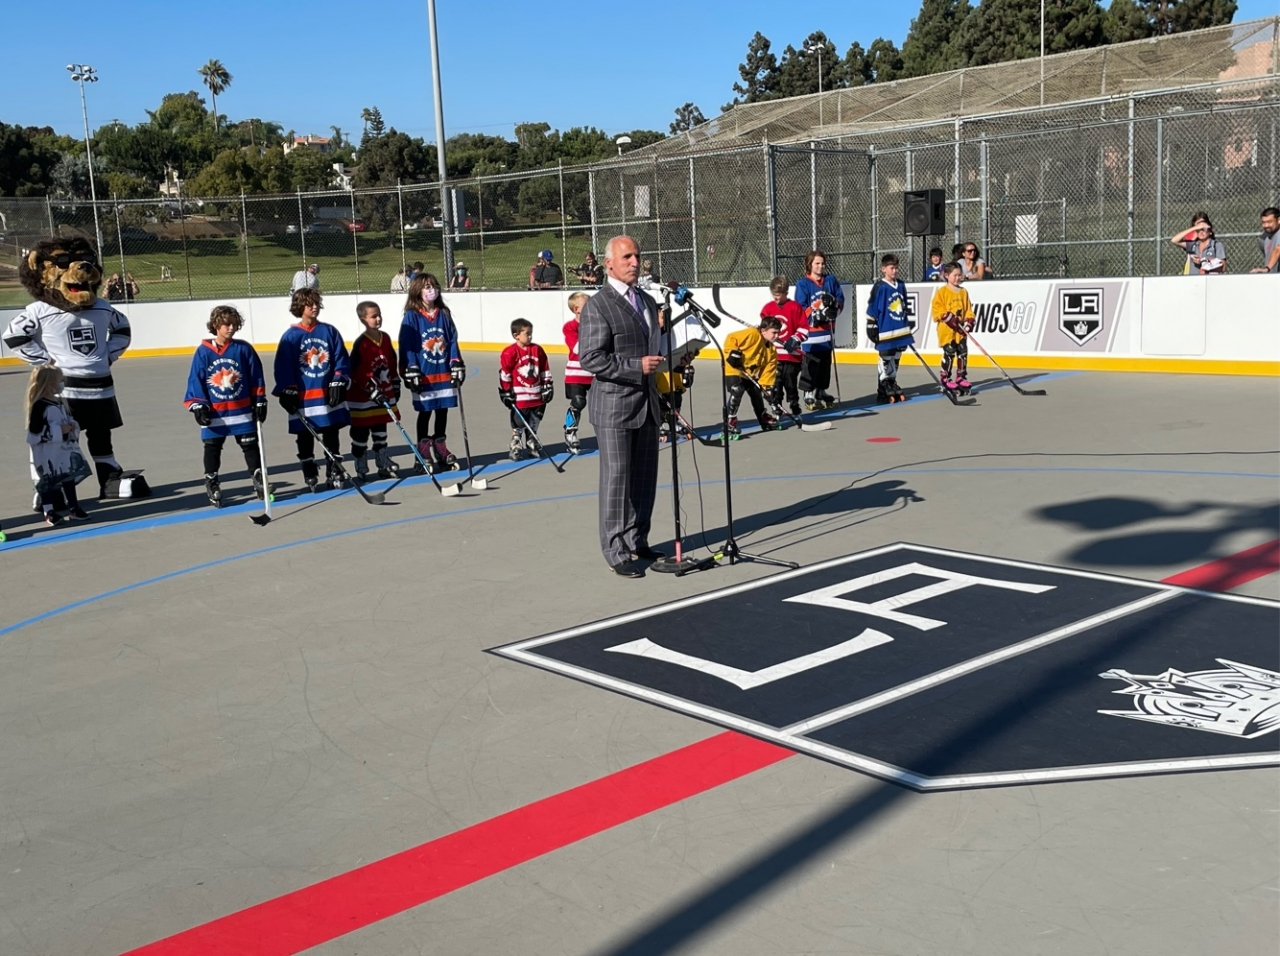 LA Kings radio analyst Daryl Evans emcees the ribbon cutting ceremony to commemorate the newly completed roller hockey rink in El Segundo on August 26, 2021.